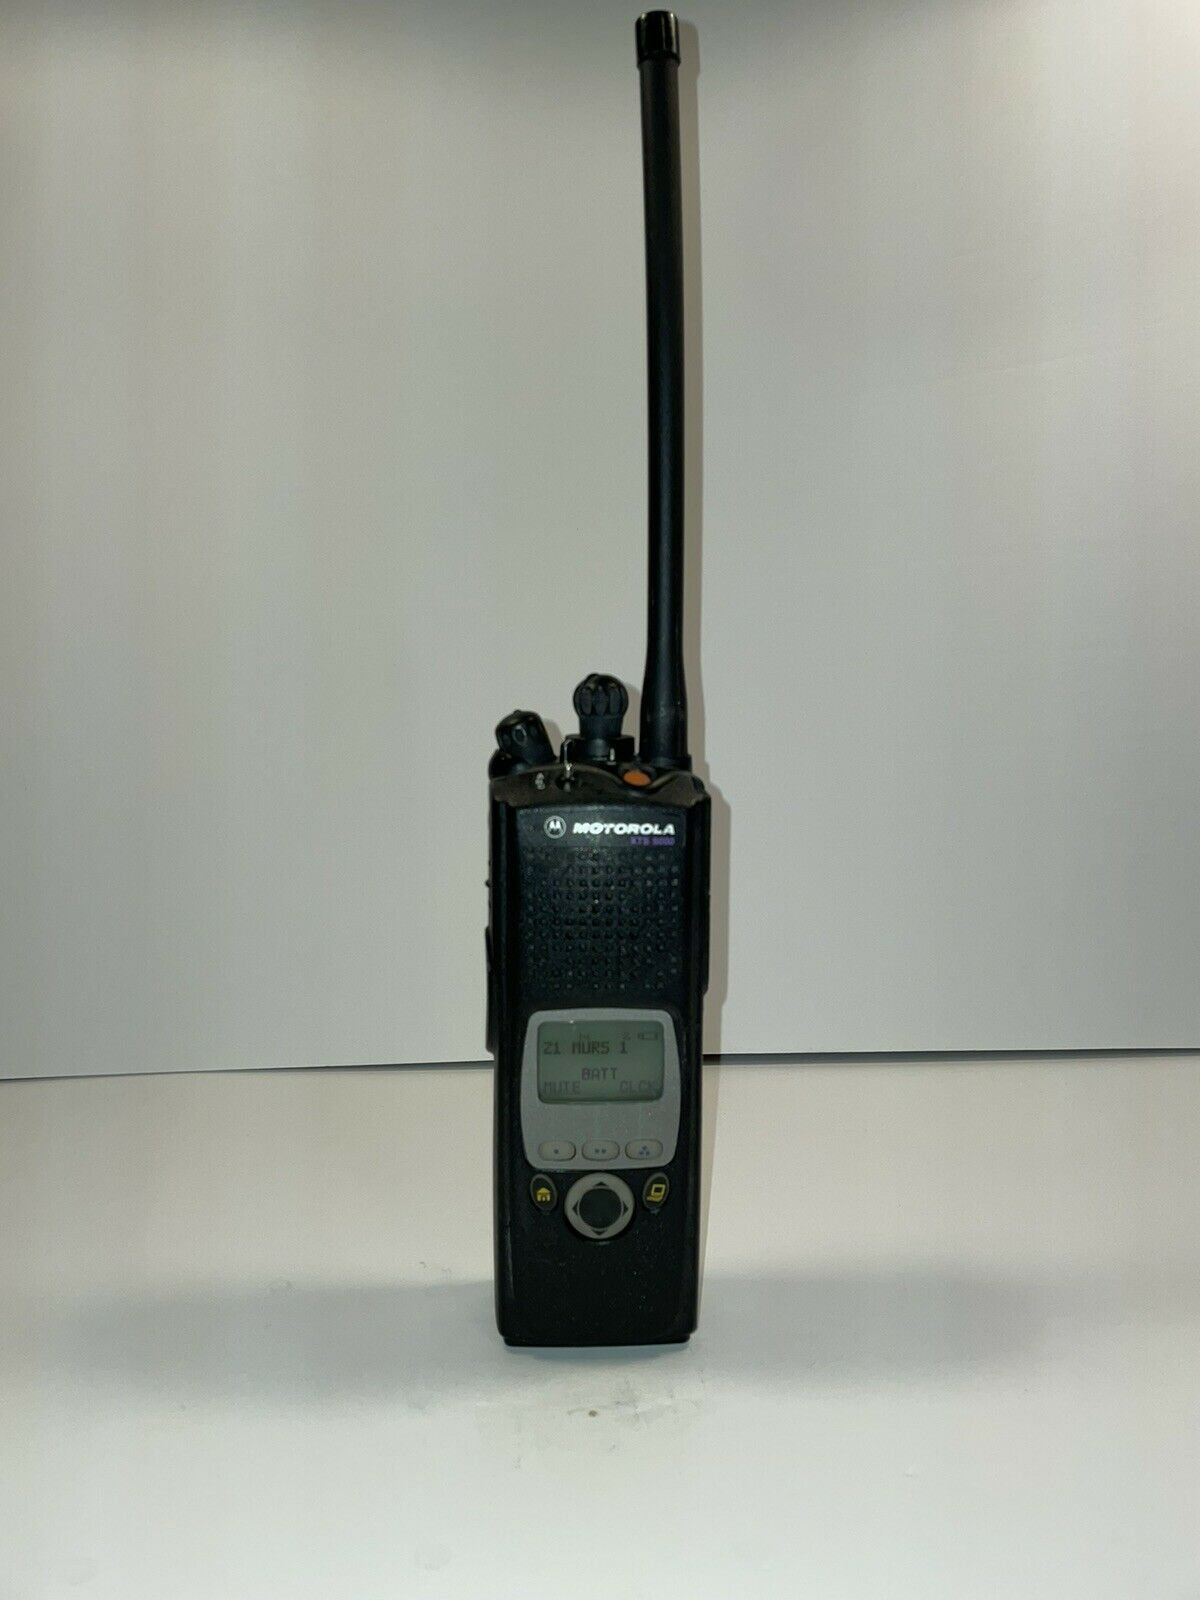 Motorola XTS5000 Model II M2 VHF 136-174 MHz H18KEF9PW6AN Tuned & Aligned!. Buy it now for 224.99